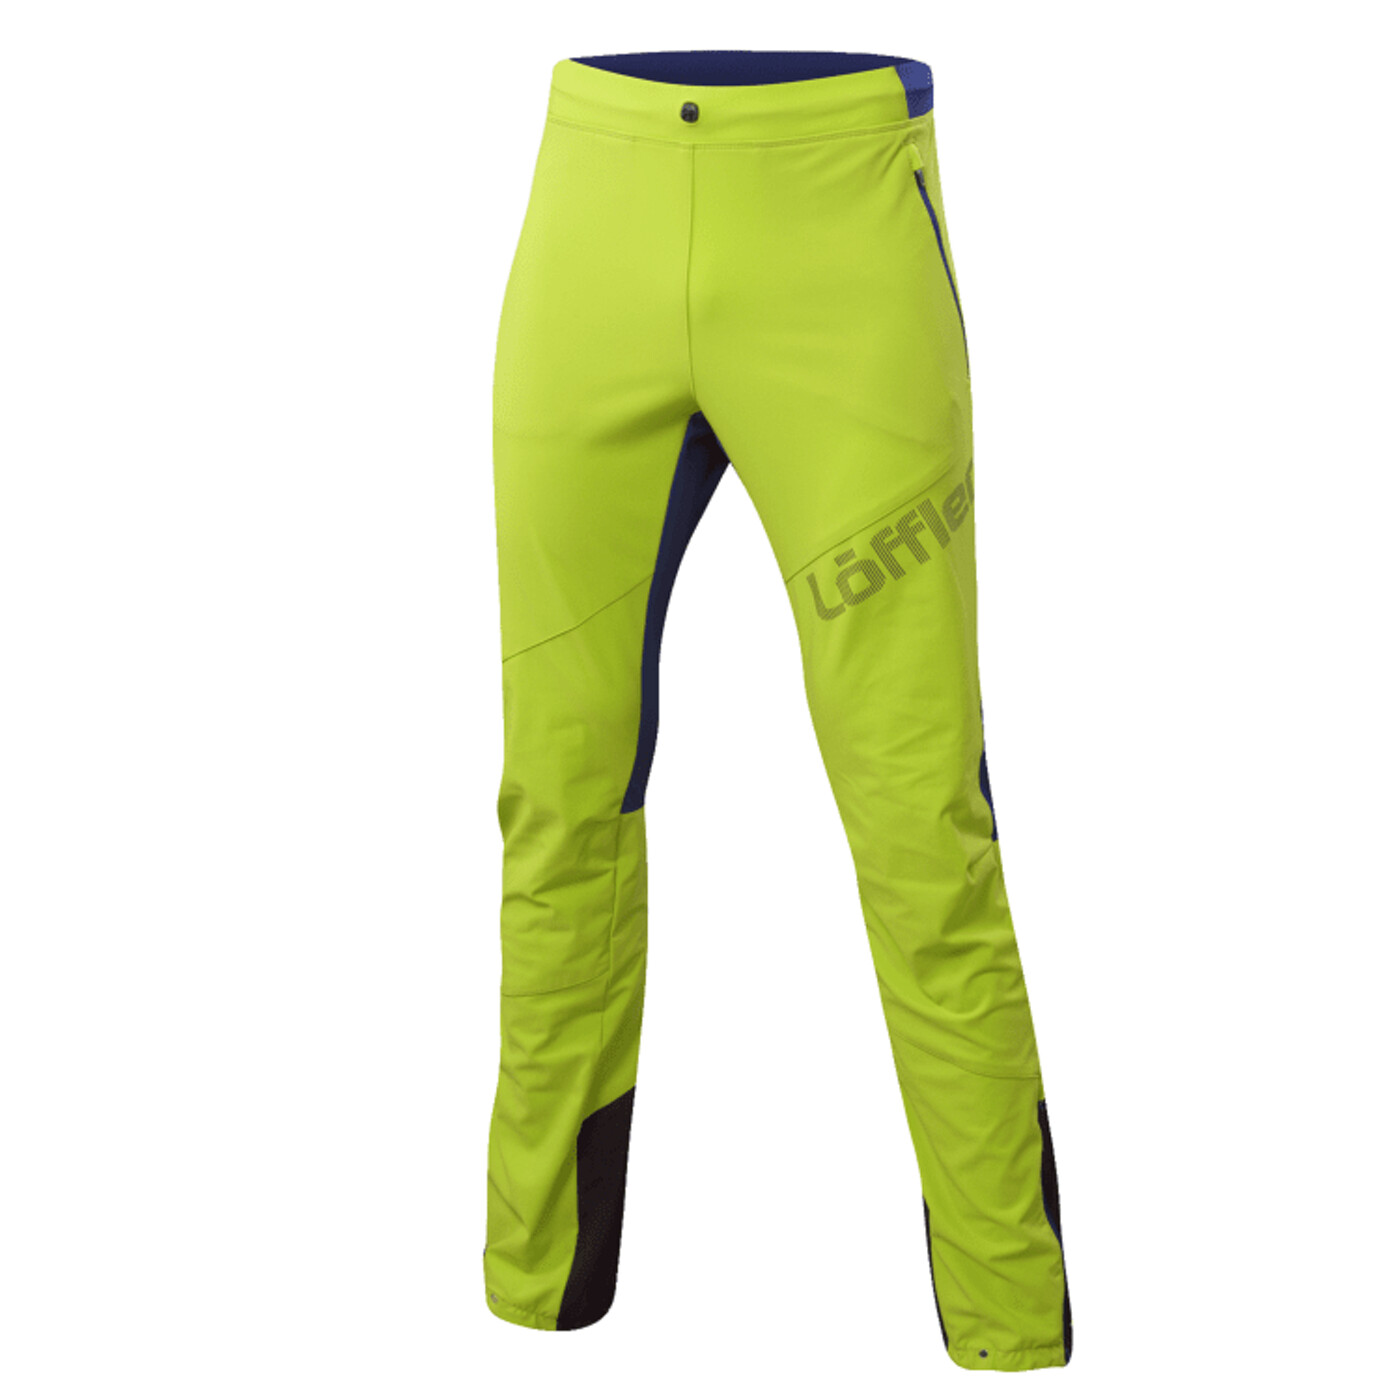 LÖFFLER M TOURING PANTS SPEED AS - Herren